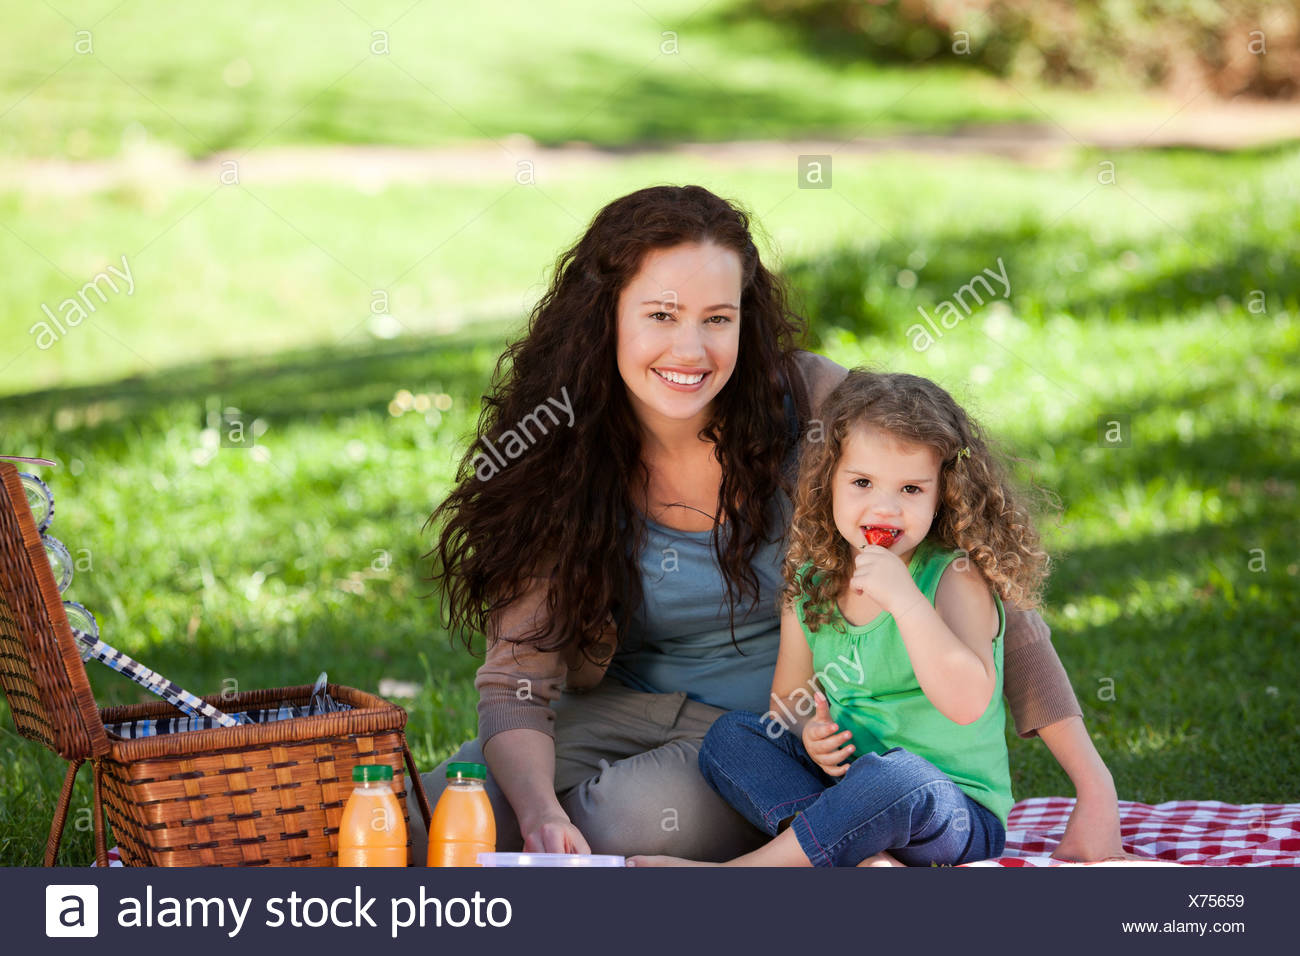 Mother and her daughter picnicking - Stock Image